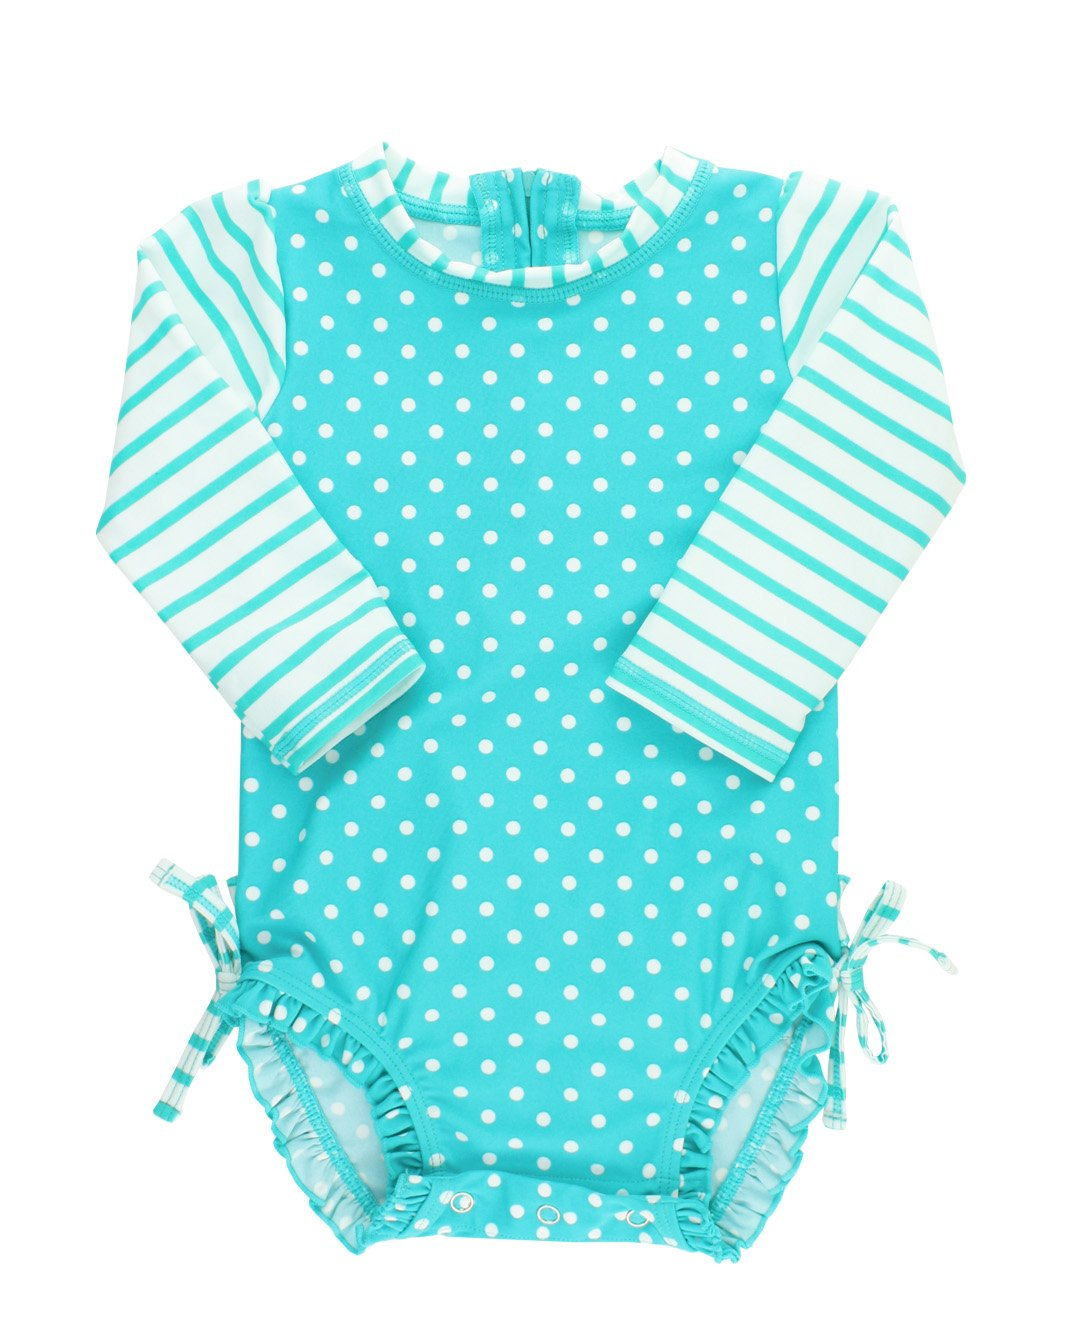 RuffleButts Baby/Toddler Girls Long Sleeve One Piece Swimsuit - Aqua Polka Dot with UPF 50+ Sun Protection - 2T by RuffleButts